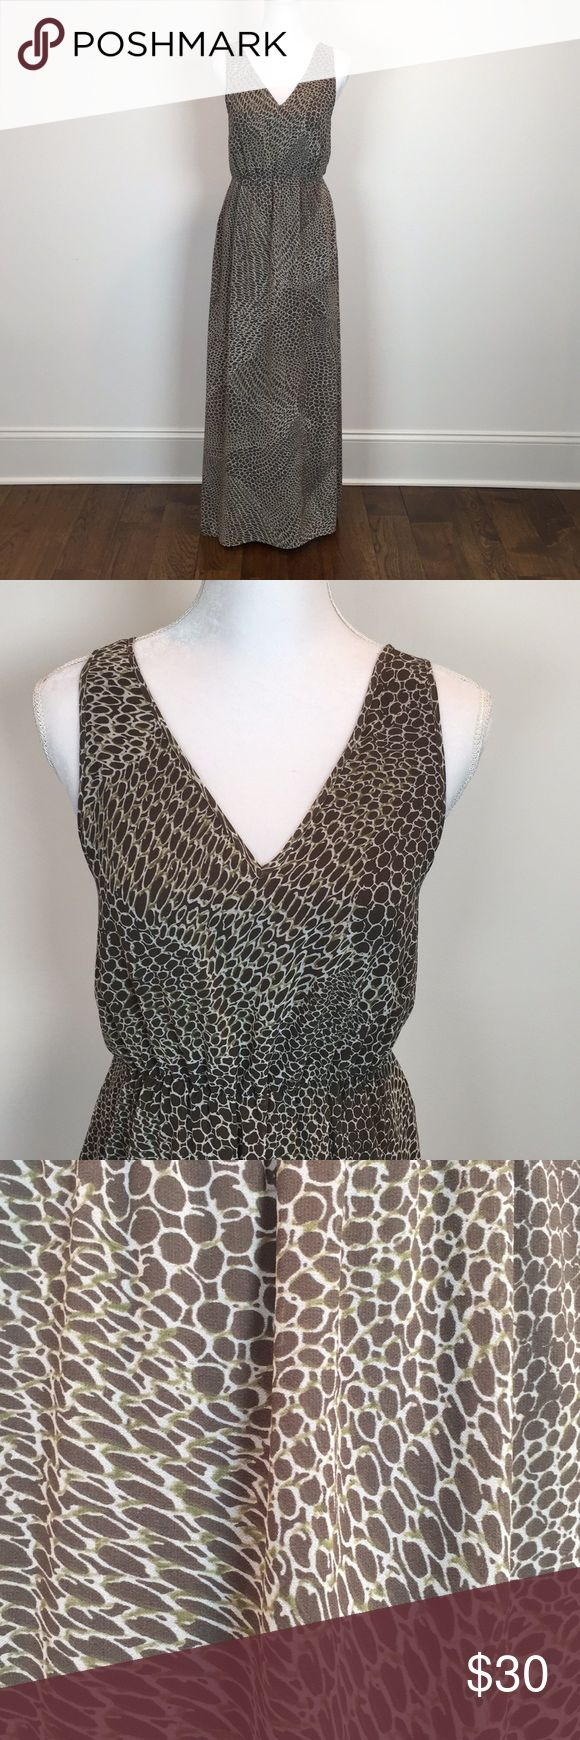 """Banana Republic Animal Print Maxi Dress Excellent like new condition!  No flaws.  Elastic waist and bra strap ties.  Fully lined. Measures approximately 17.5"""" armpit to armpit and 55"""" shoulder to hem. Banana Republic Dresses Maxi"""